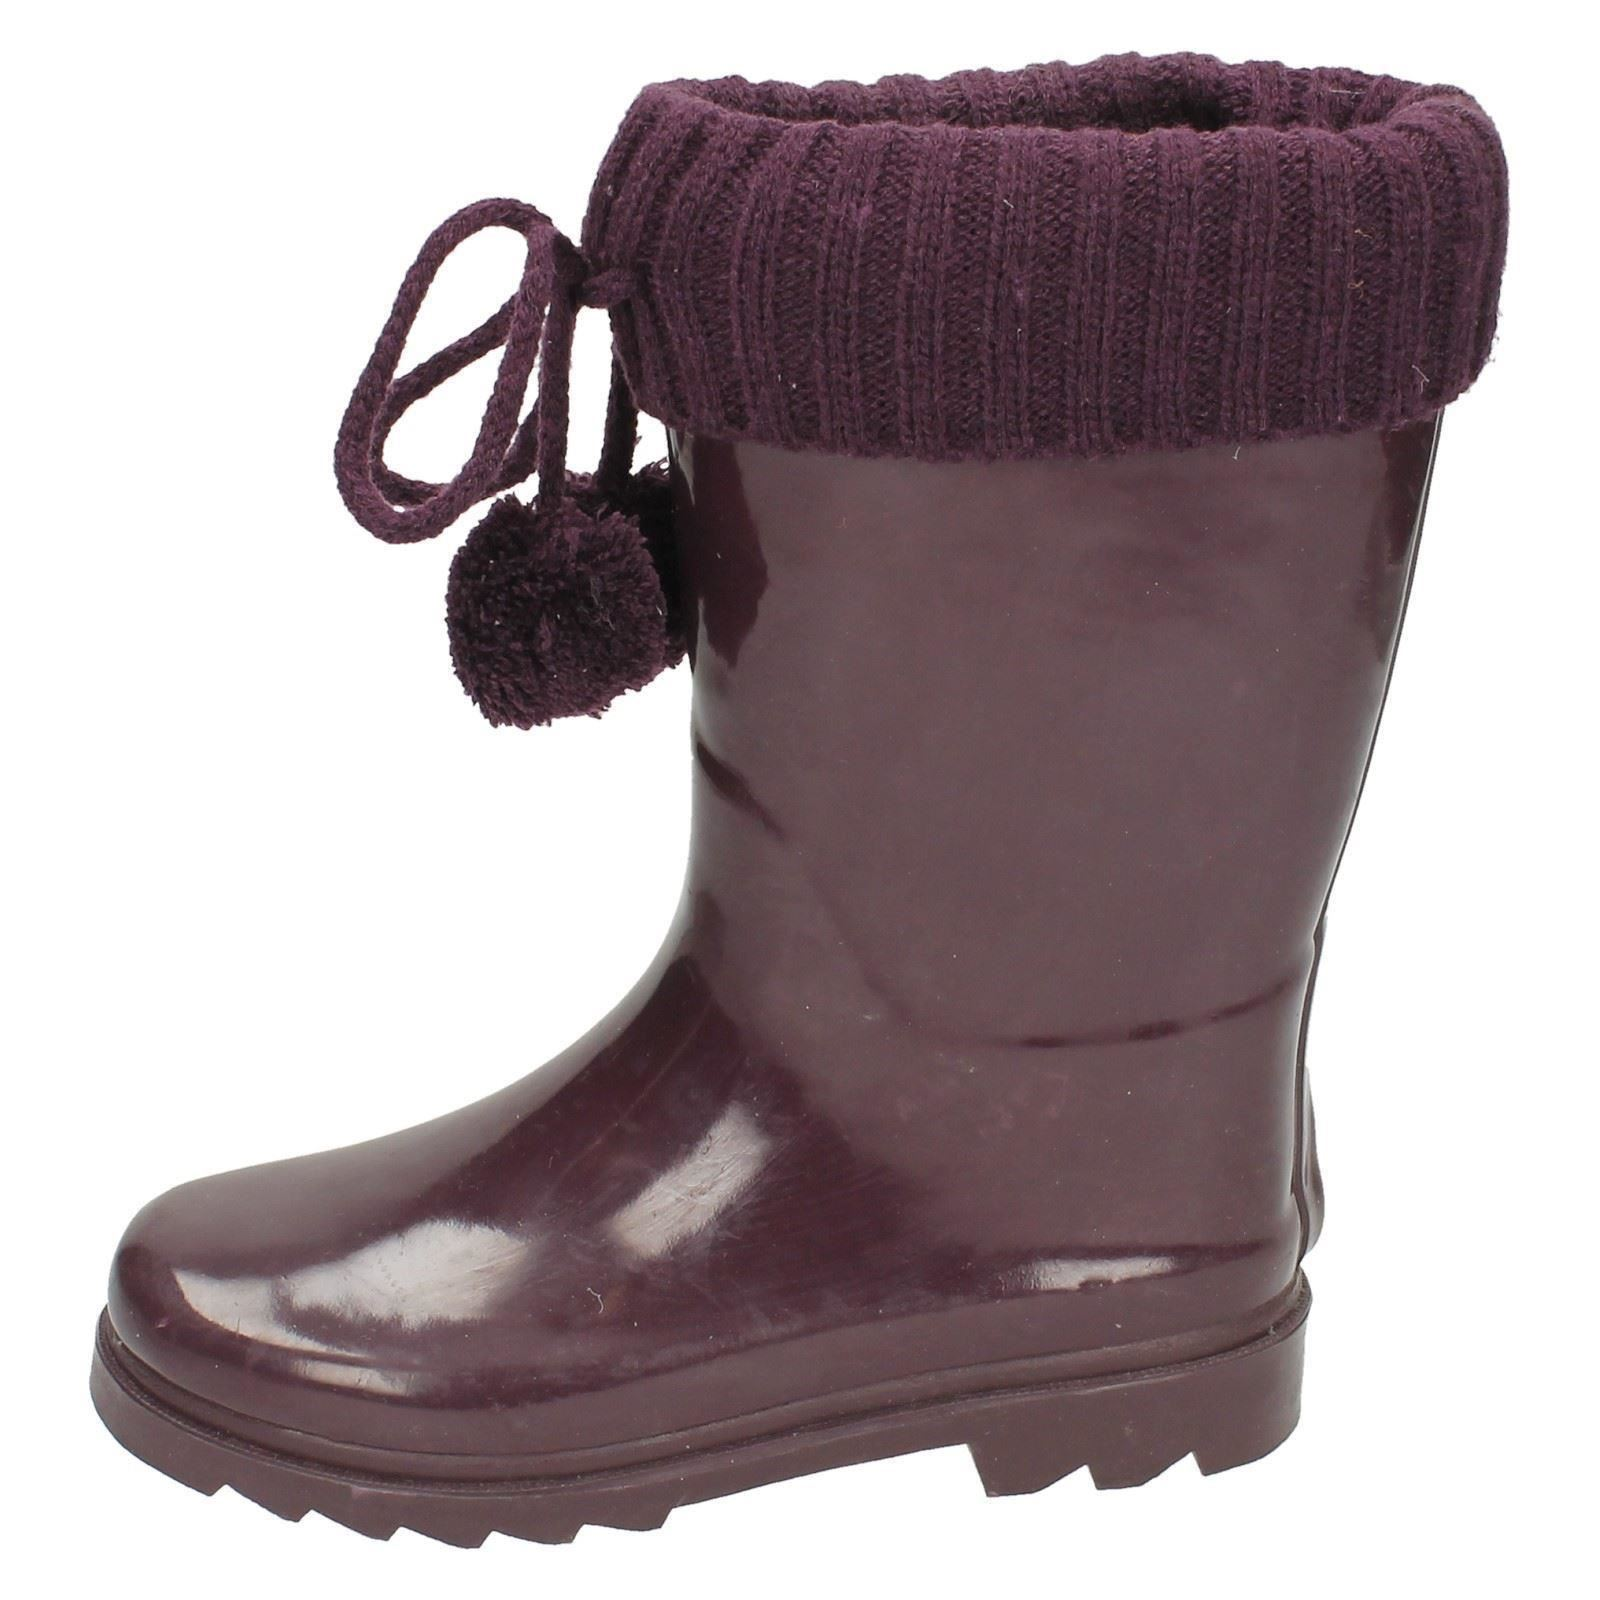 Girls Pom Pom Wellie Wellington Boot Label - X1172